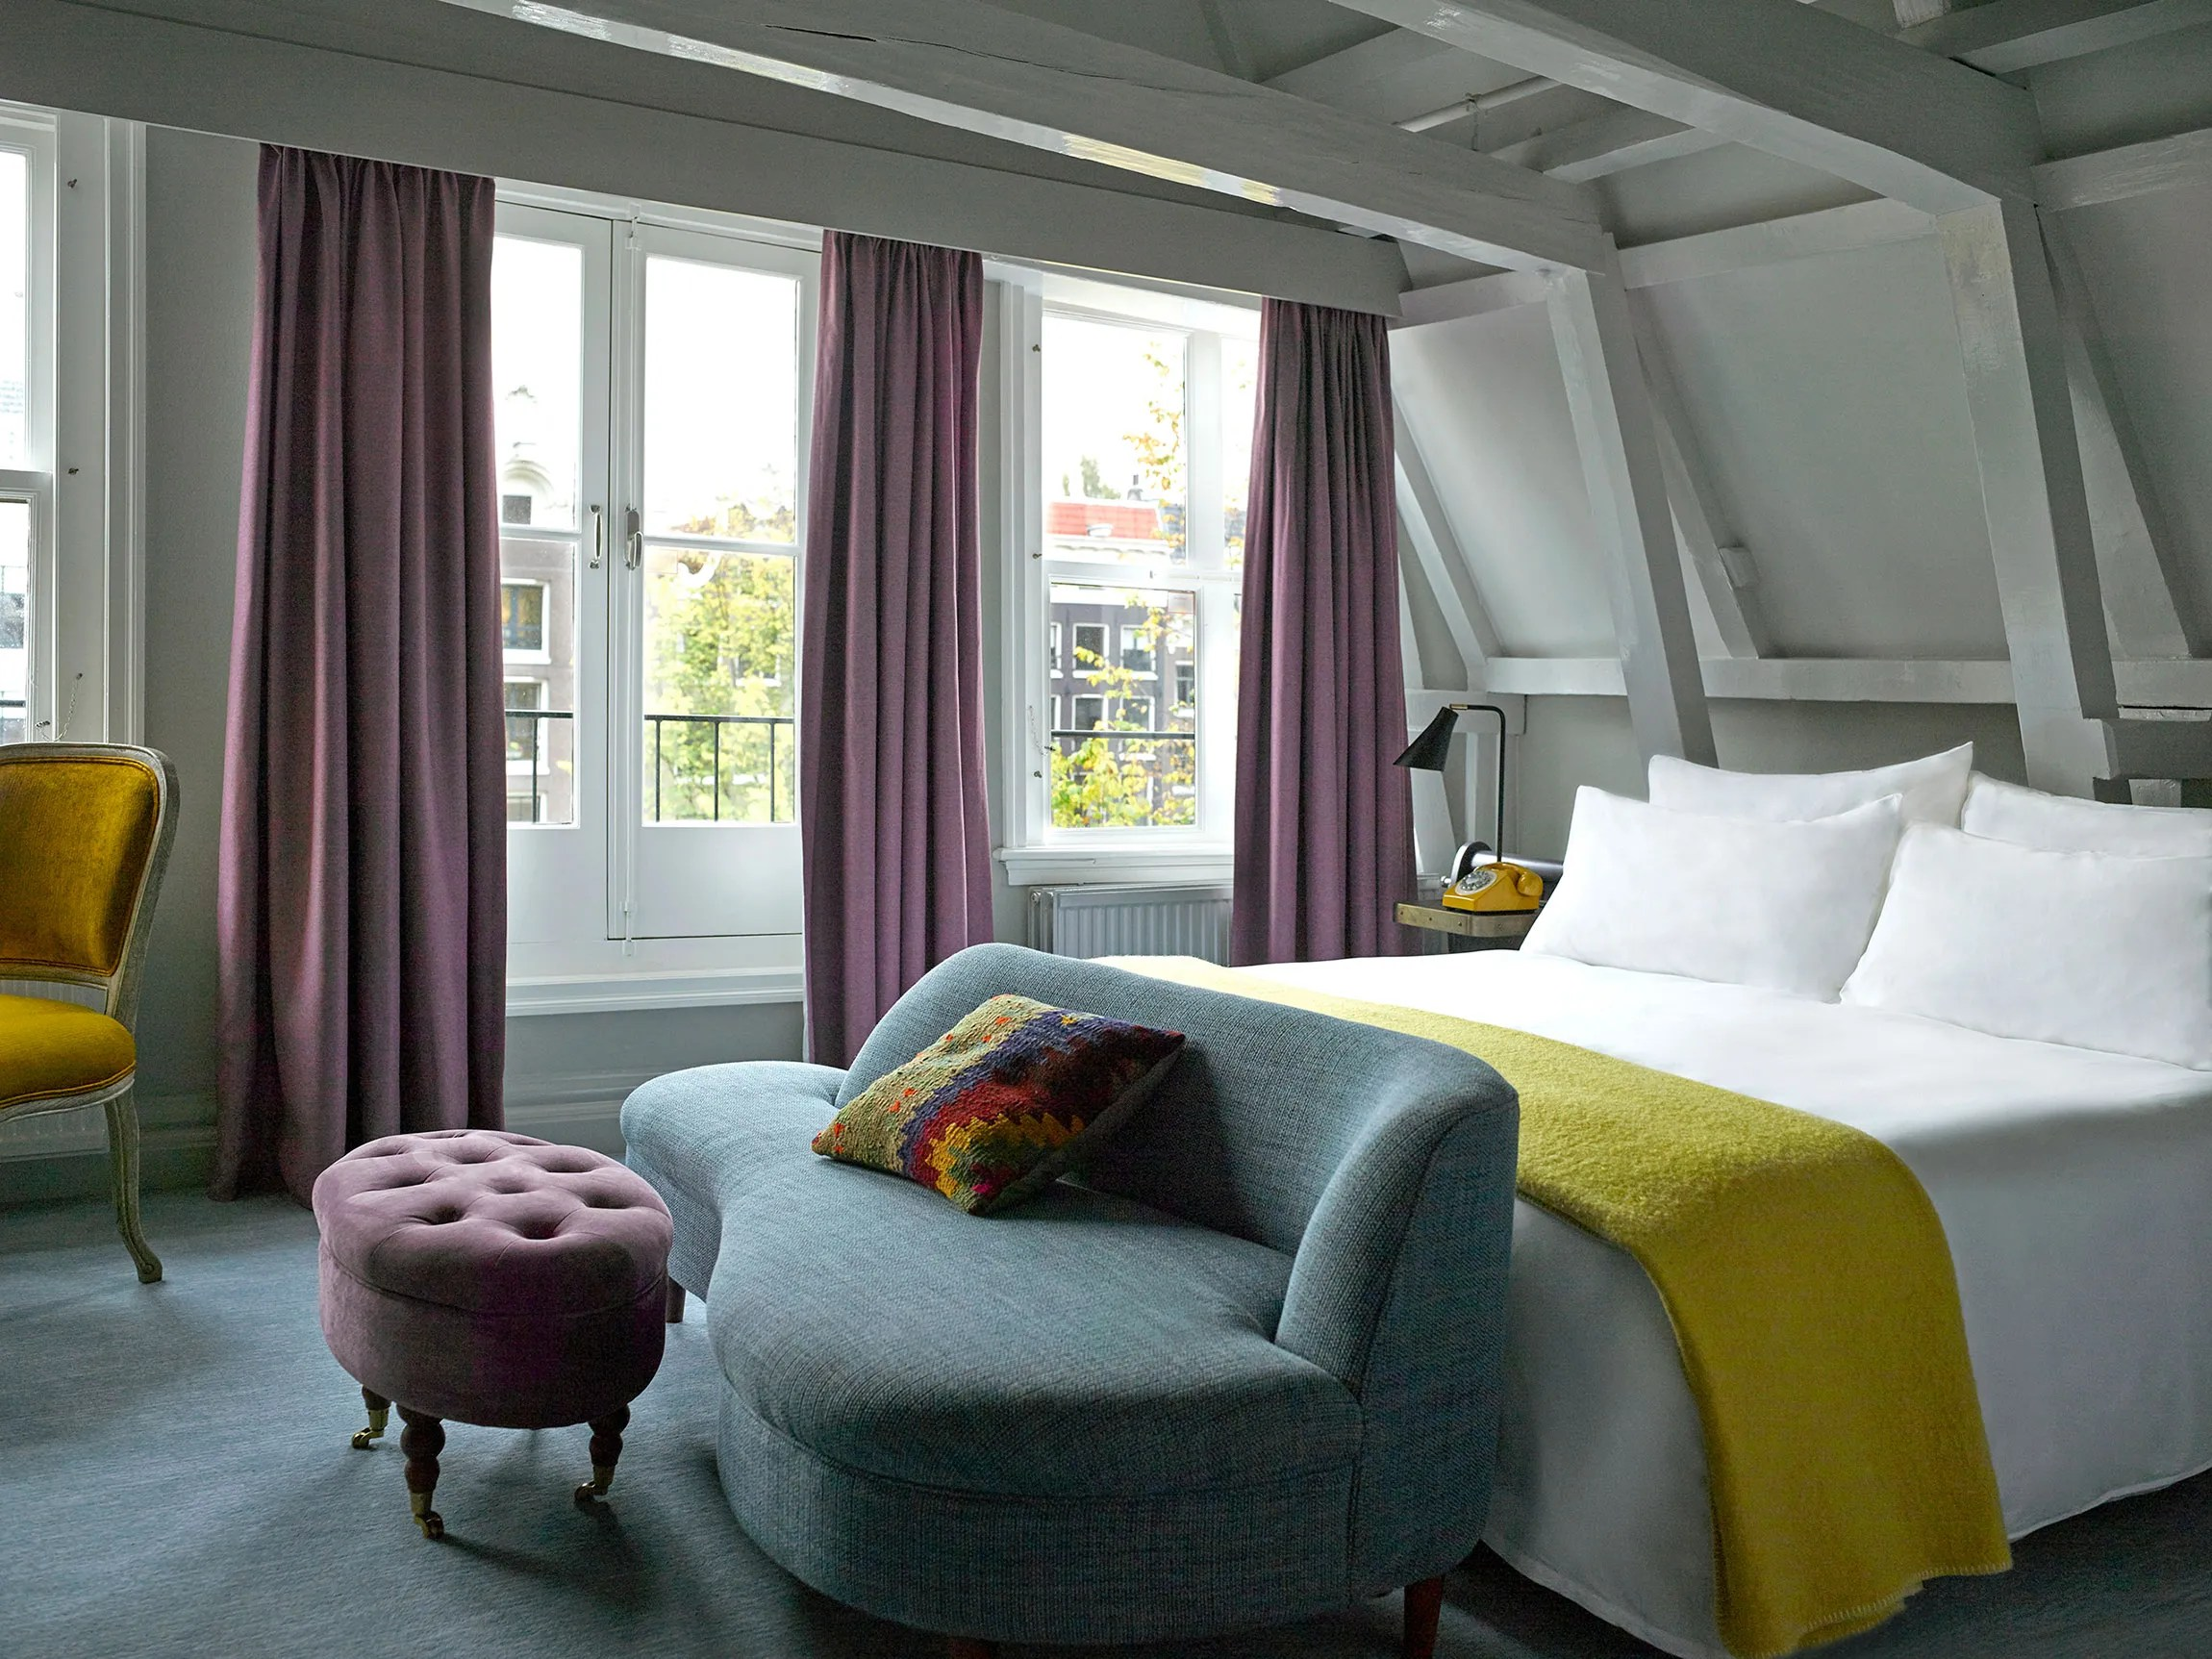 Amsterdam Interior A First Look At Amsterdam S Revamped Hotel Pulitzer